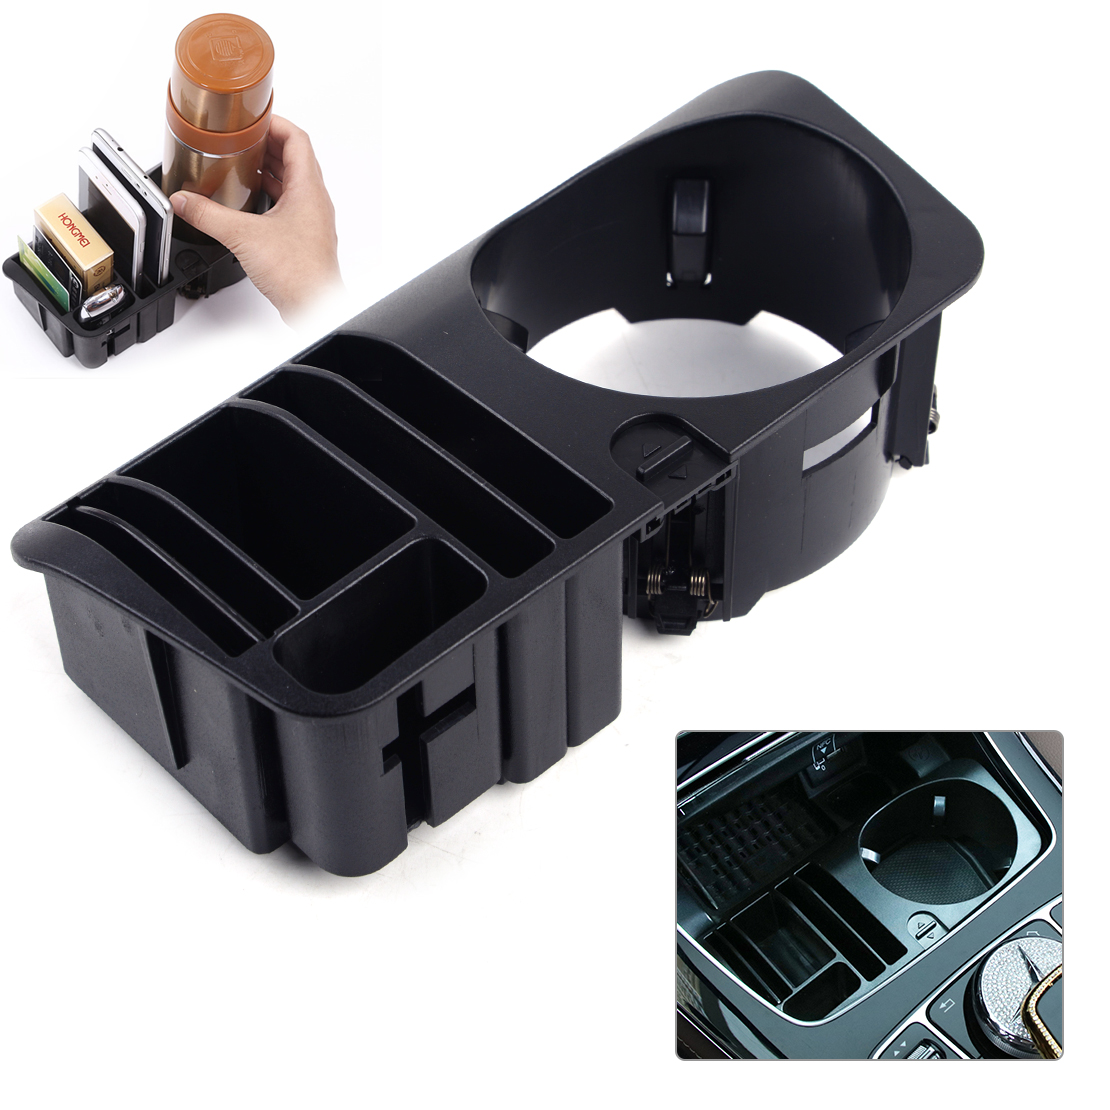 CITALL High Quality Car Central Storage Box Case Cup Holder Fit For Mercedes Benz C E GLC Class 2016 2017